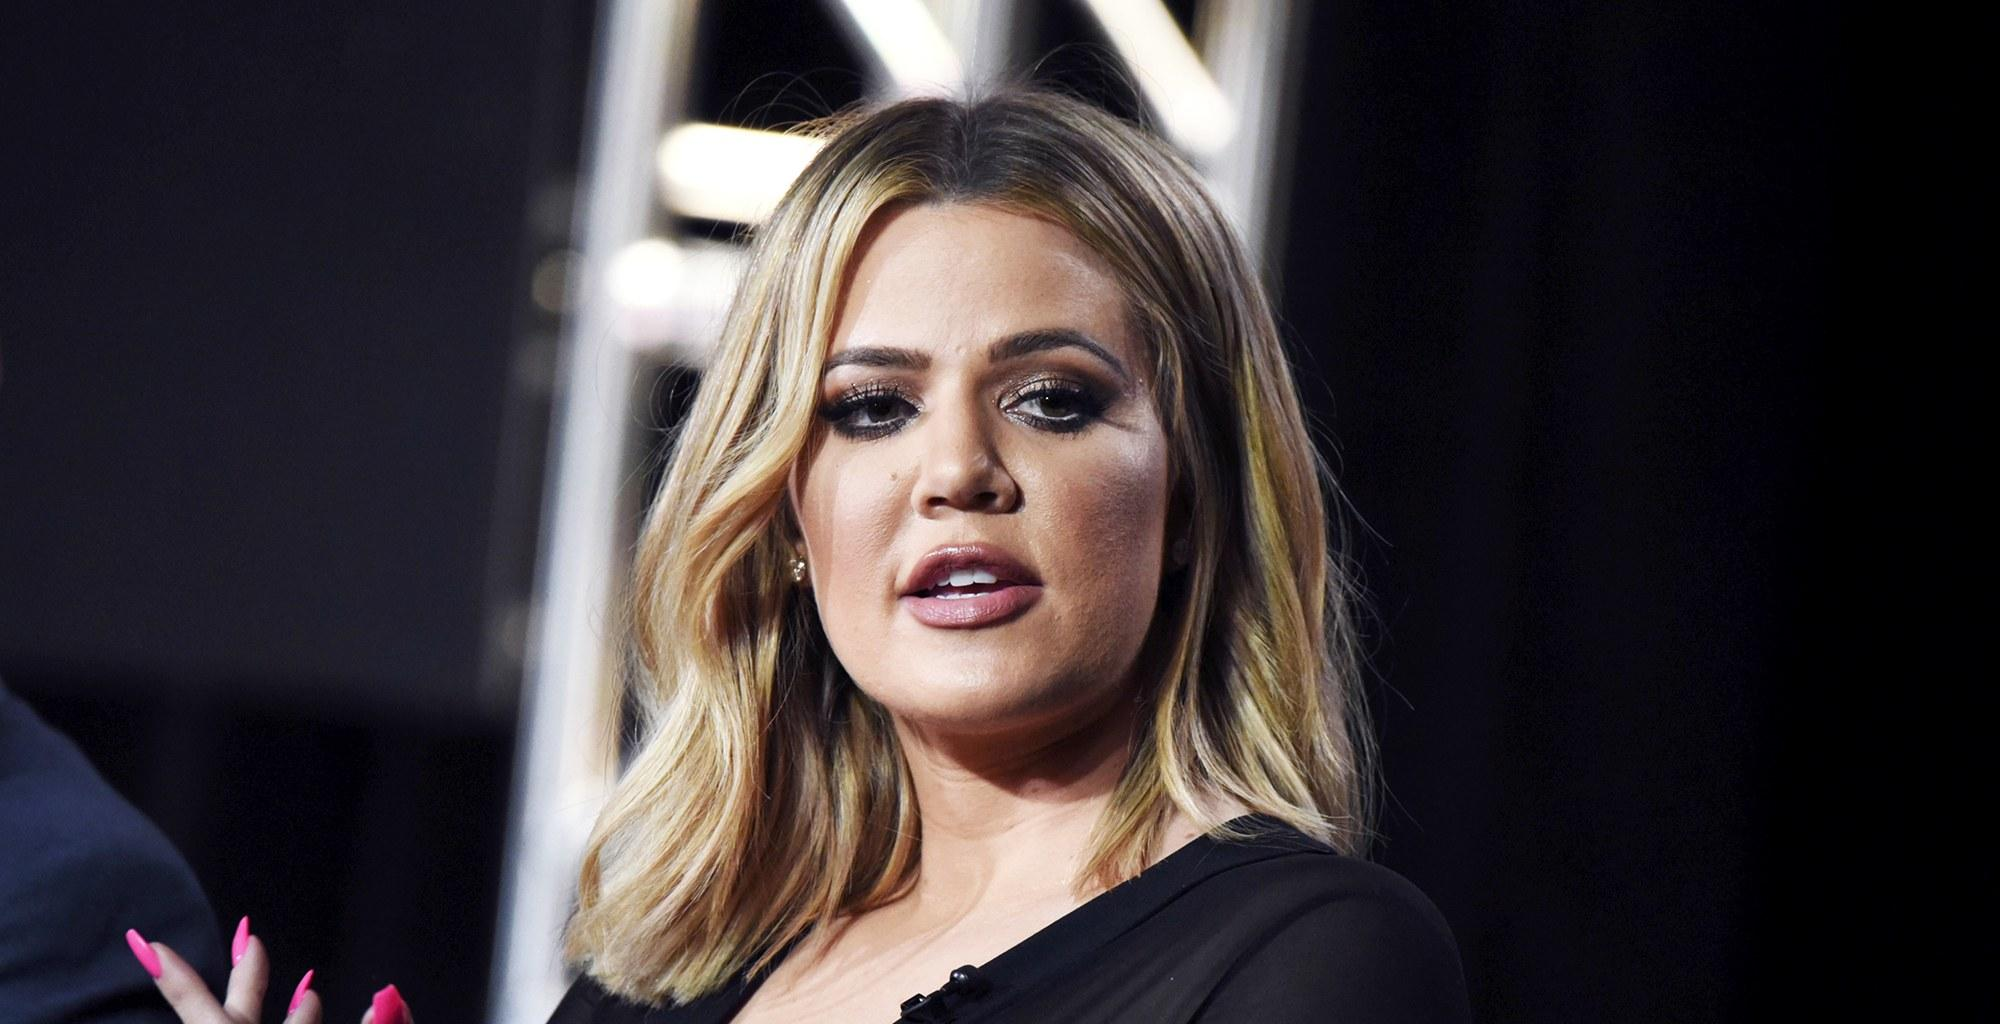 KUWK: Khloe Kardashian Reveals She's Not In A Rush To Find A New Man - Here's Why!